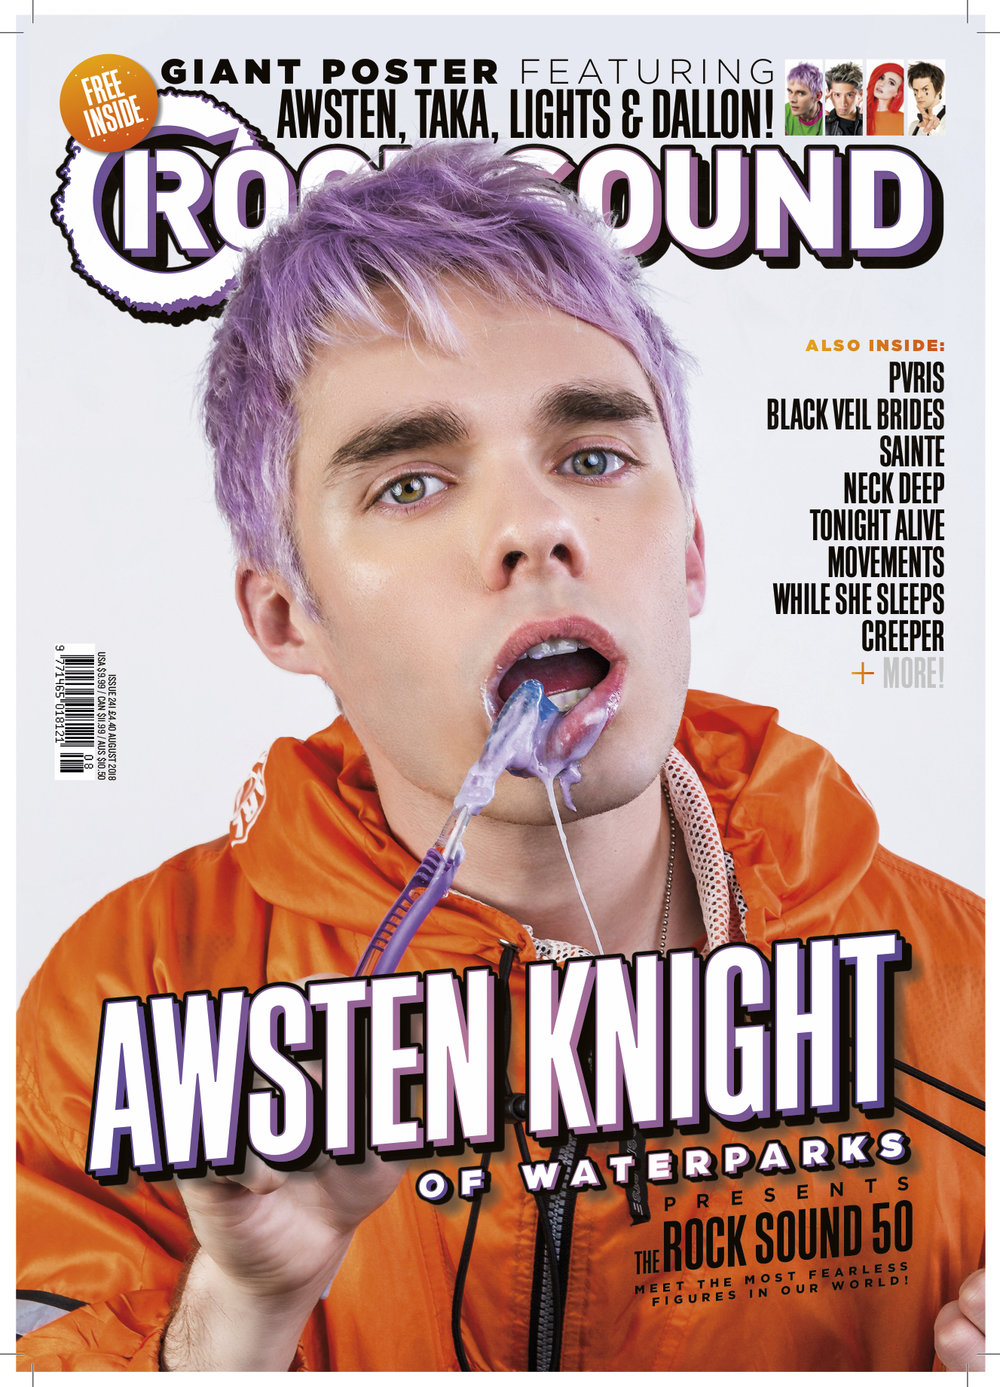 001_rocksound_AUG18_NEWSSTAND.jpg